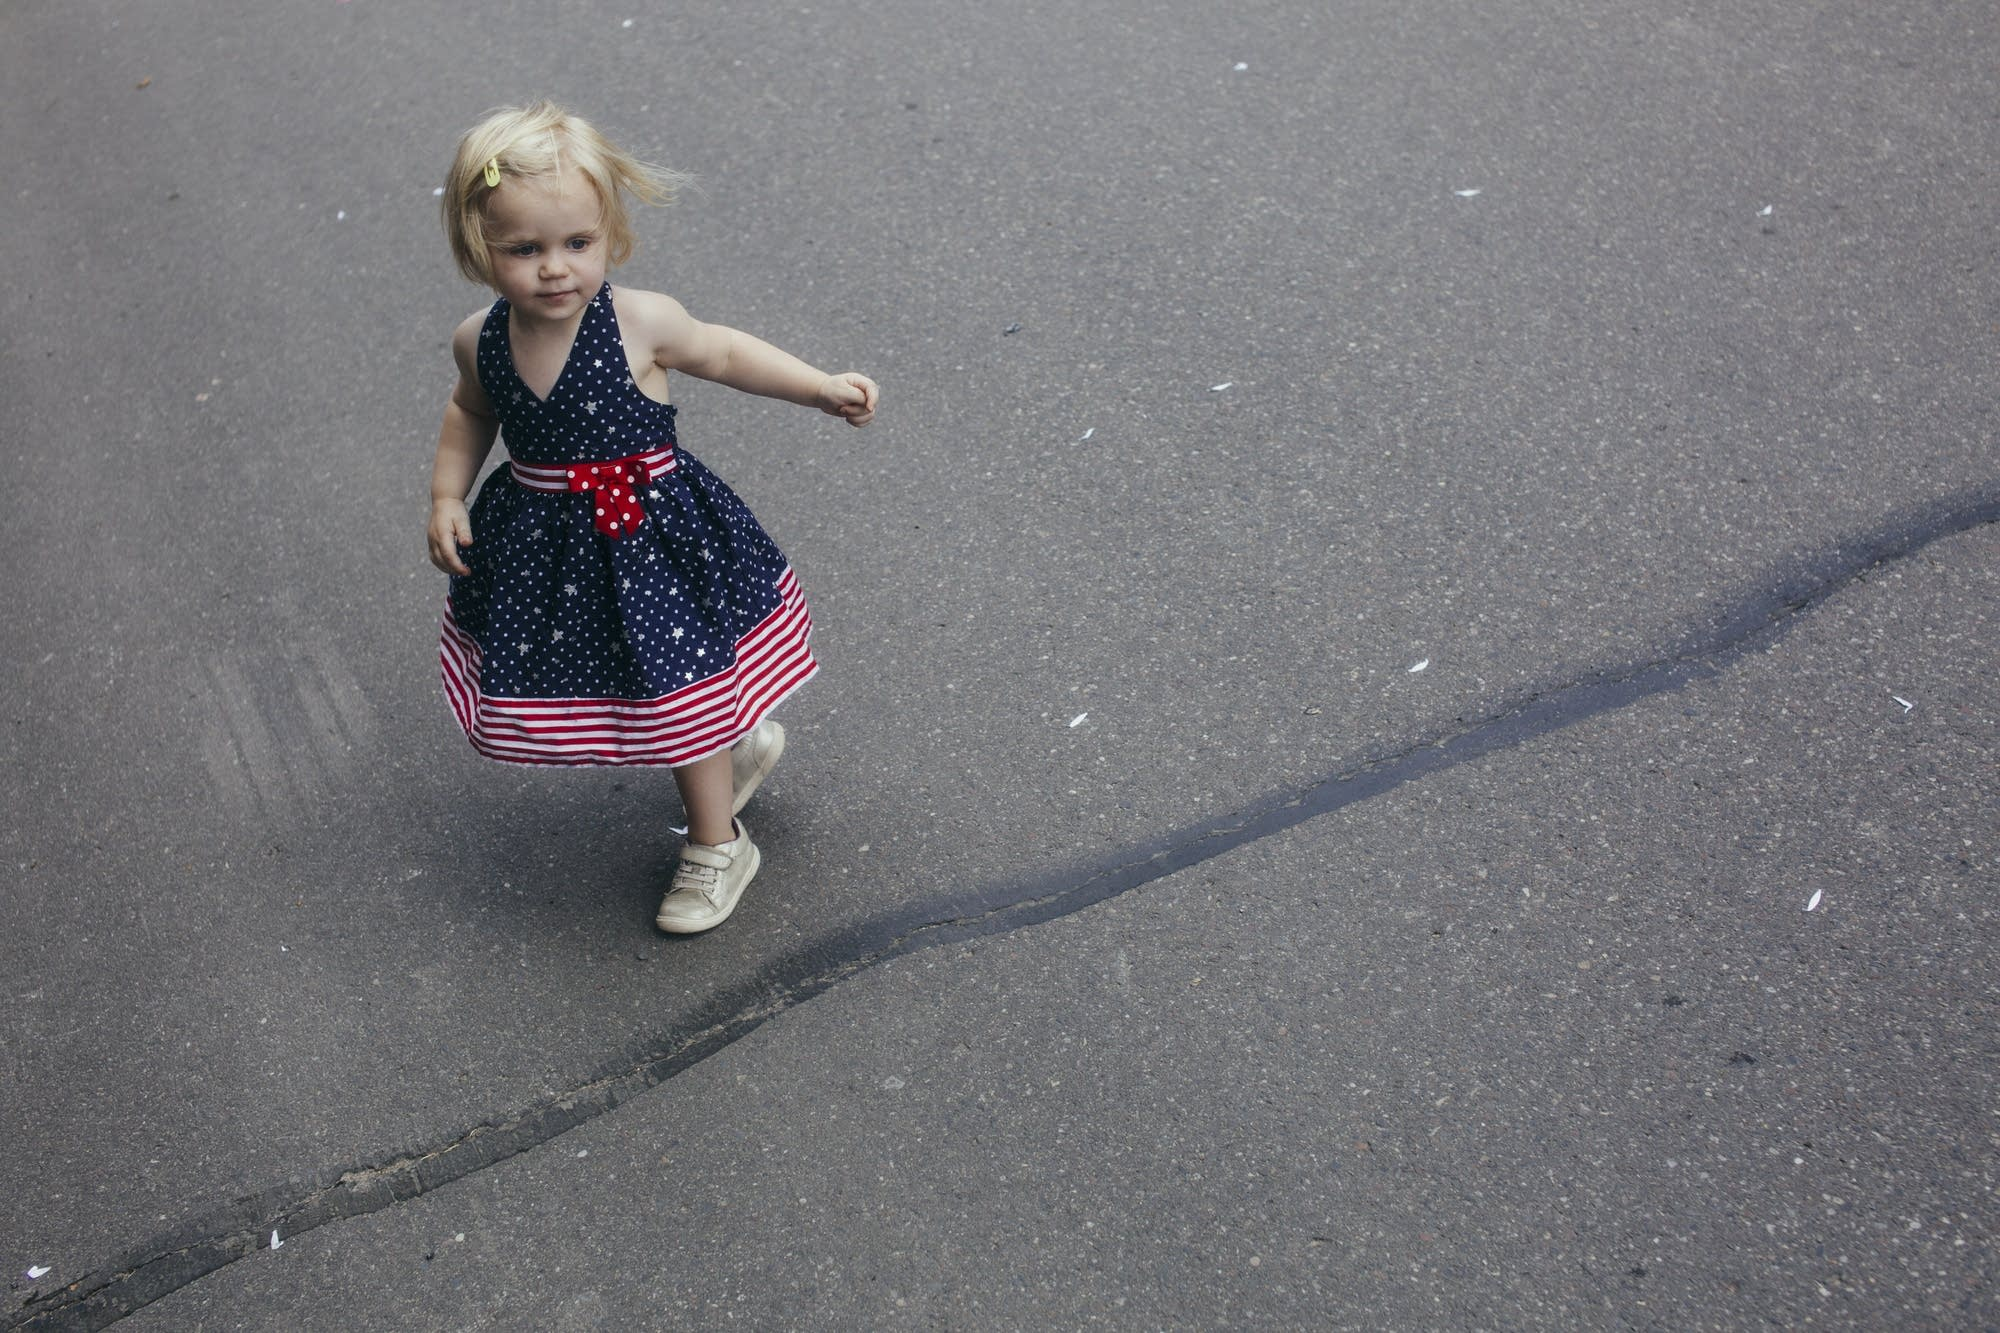 Two-year-old Alanee Brettingen dances in the street.